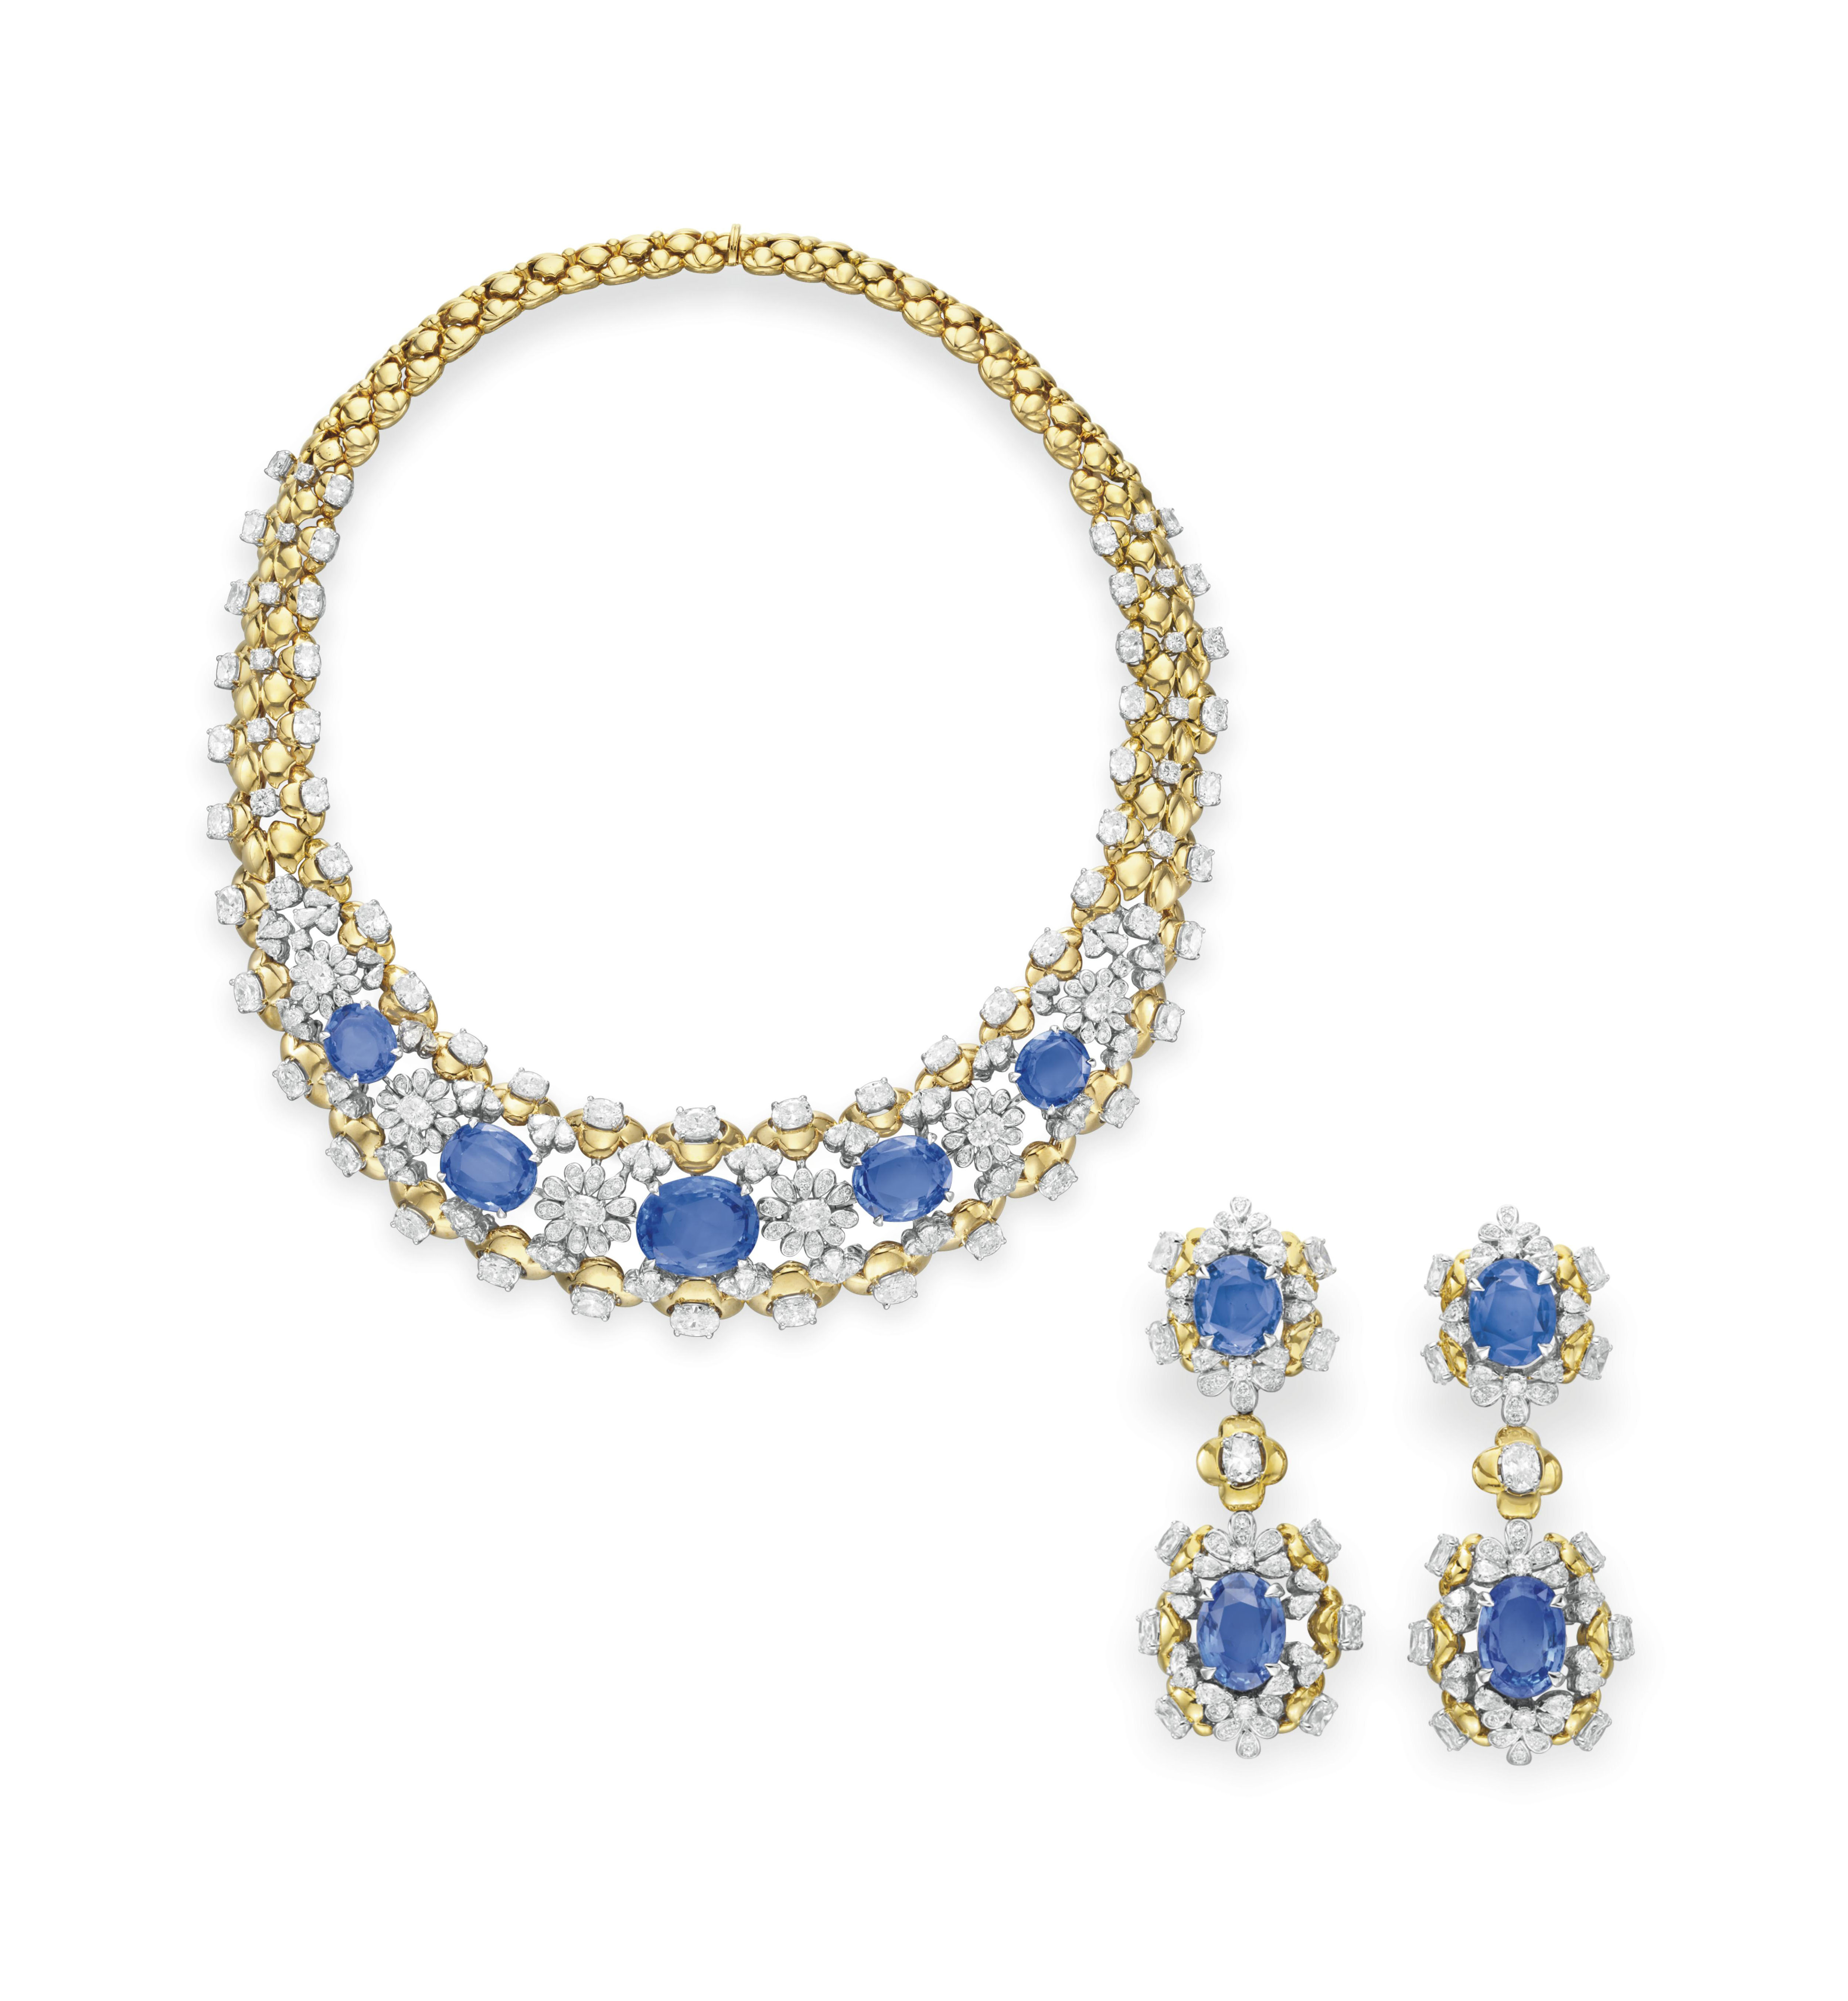 A SET OF SAPPHIRE, DIAMOND AND GOLD JEWELRY, BY MOUAWAD